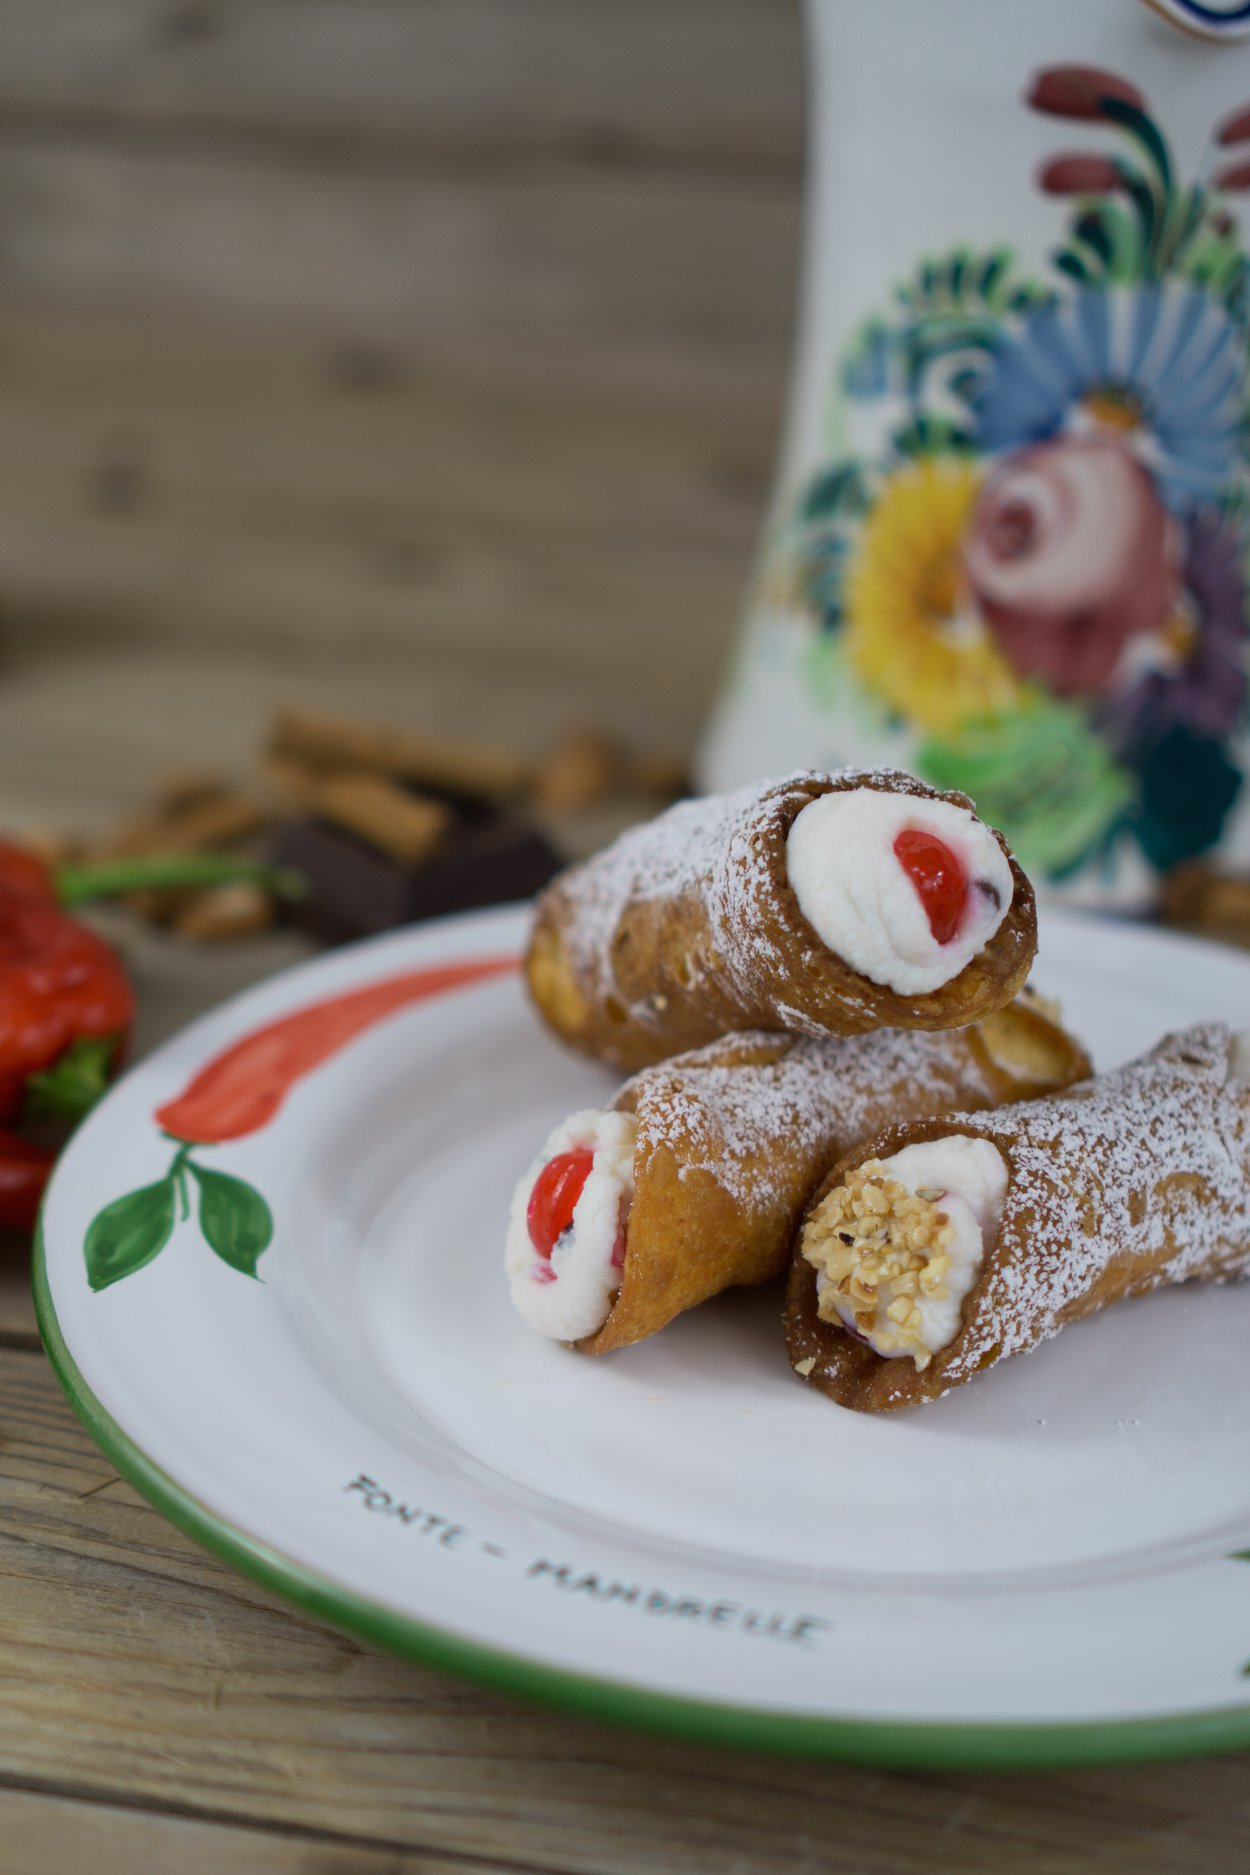 CANNOLO IN VACANZA